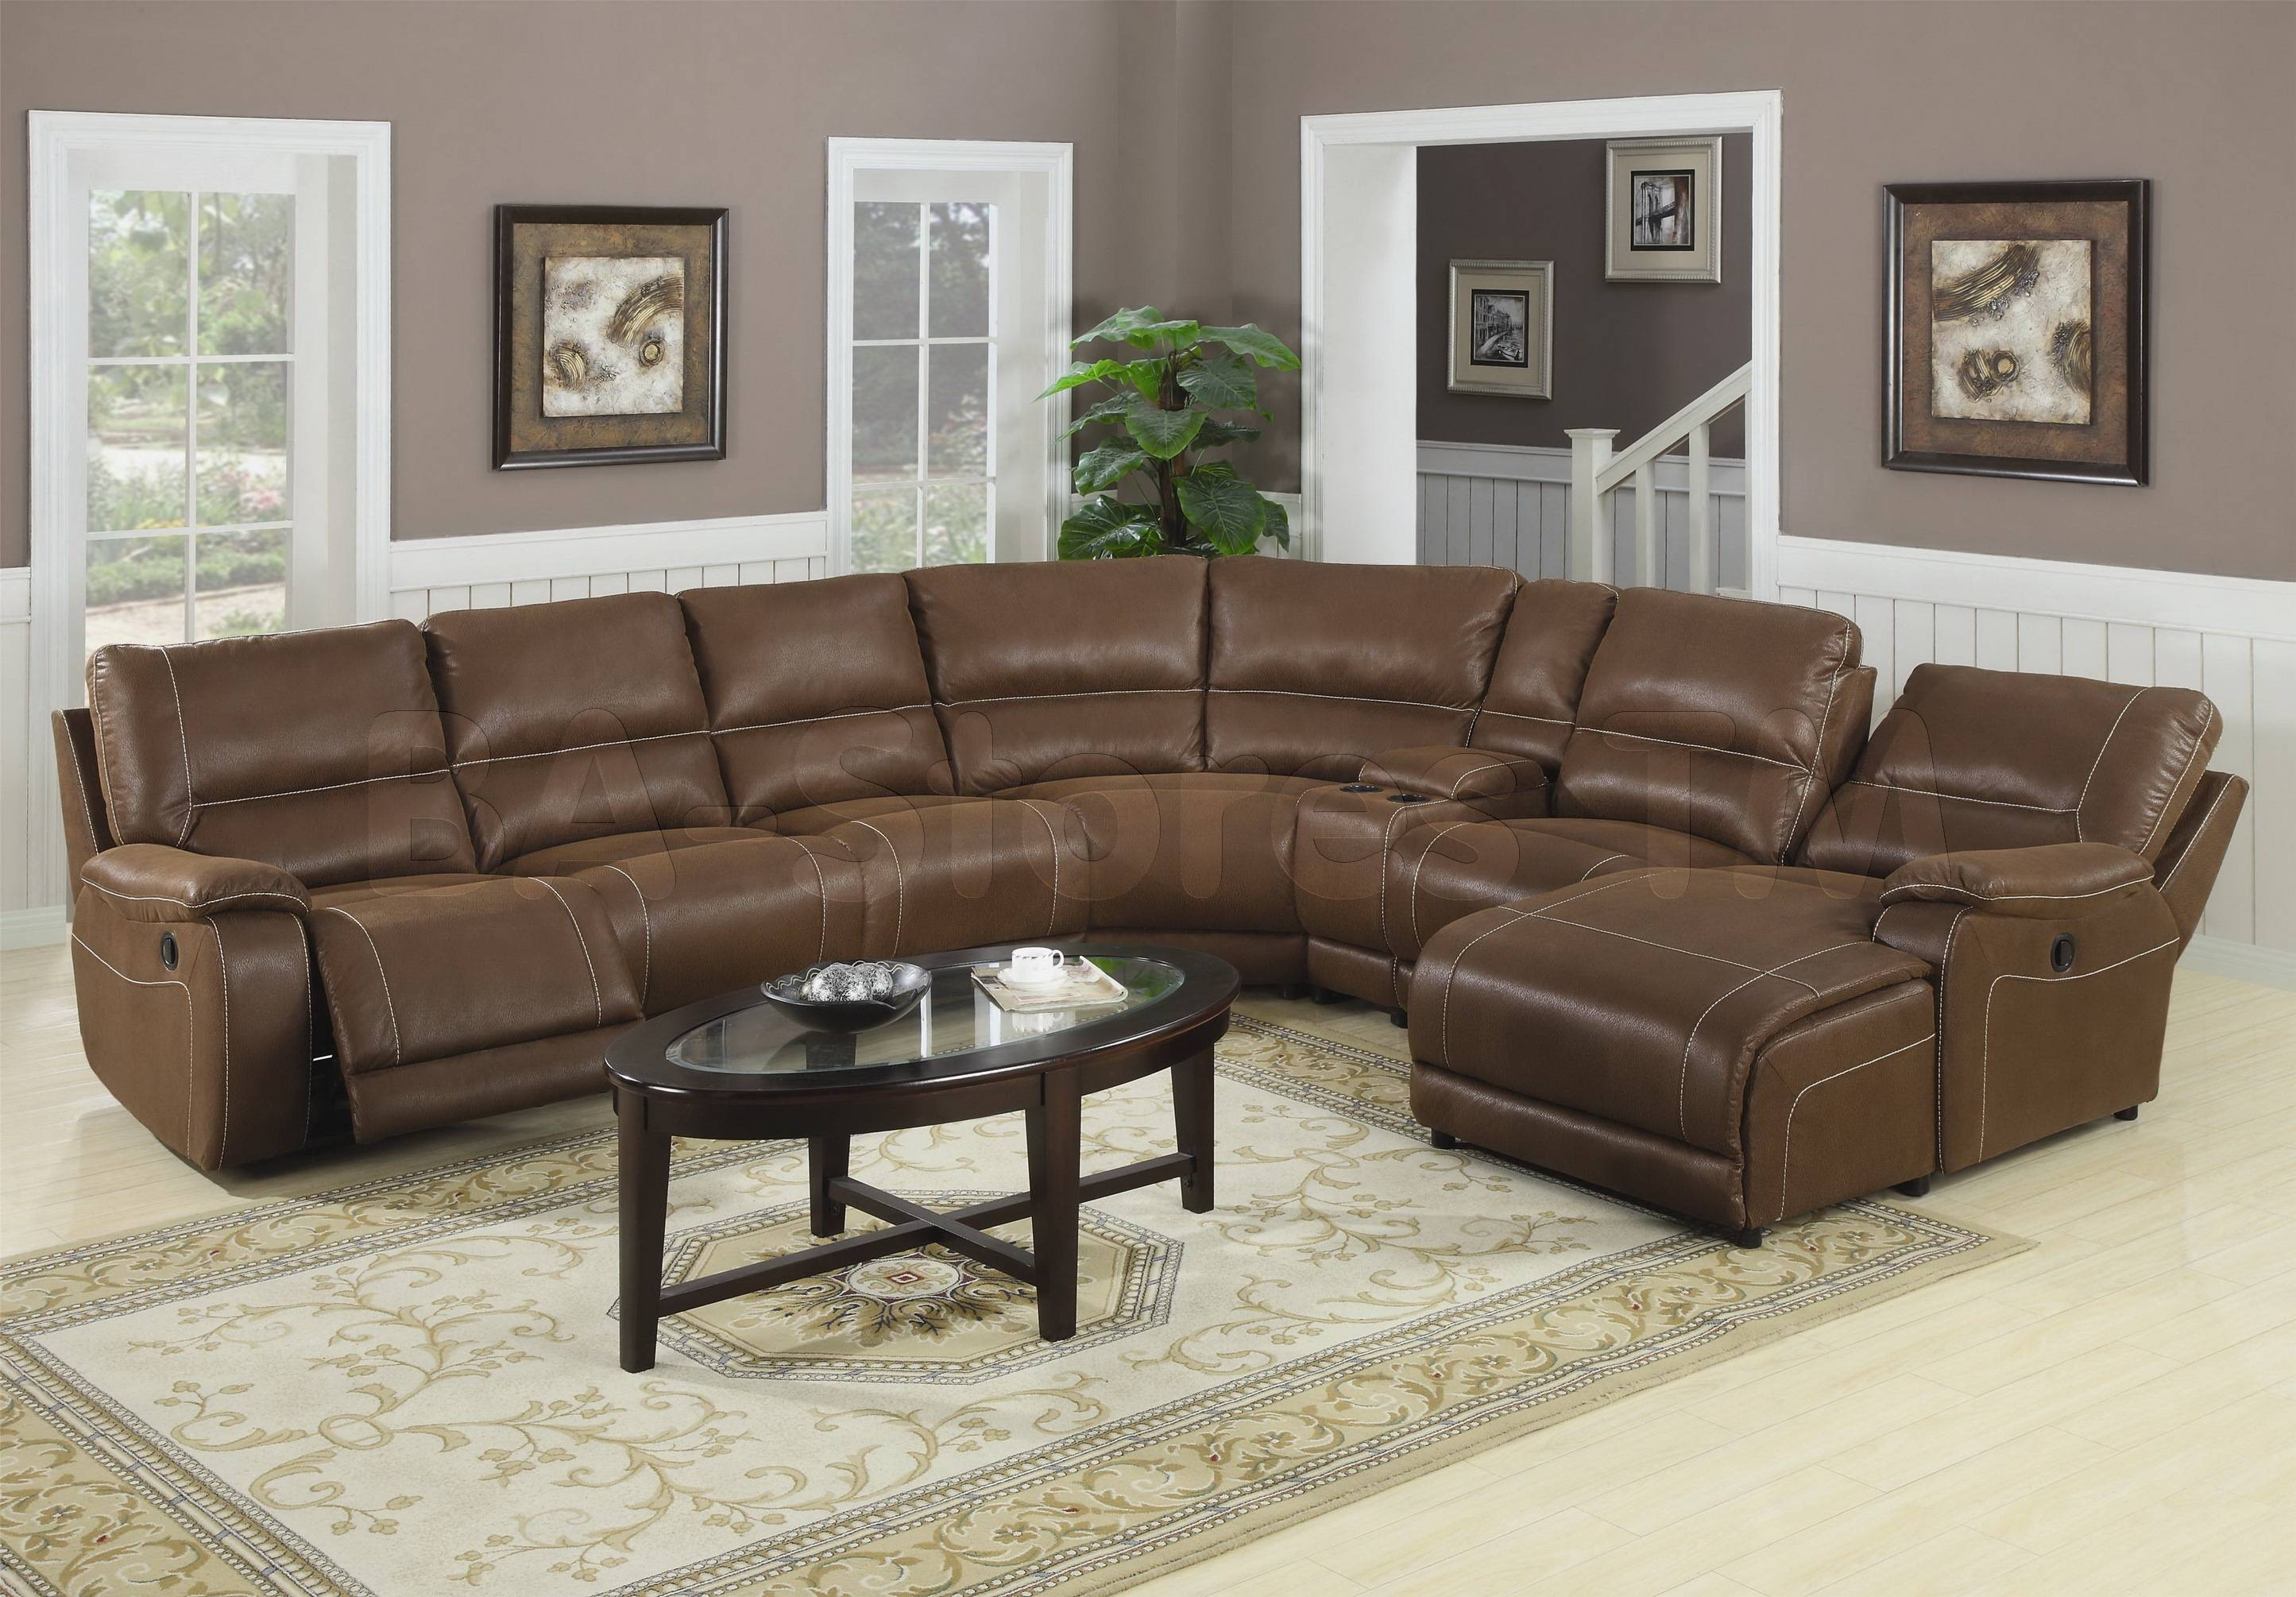 Overstuffed Sofa With Chaise | Tehranmix Decoration throughout Long Sectional Sofa With Chaise (Image 24 of 30)